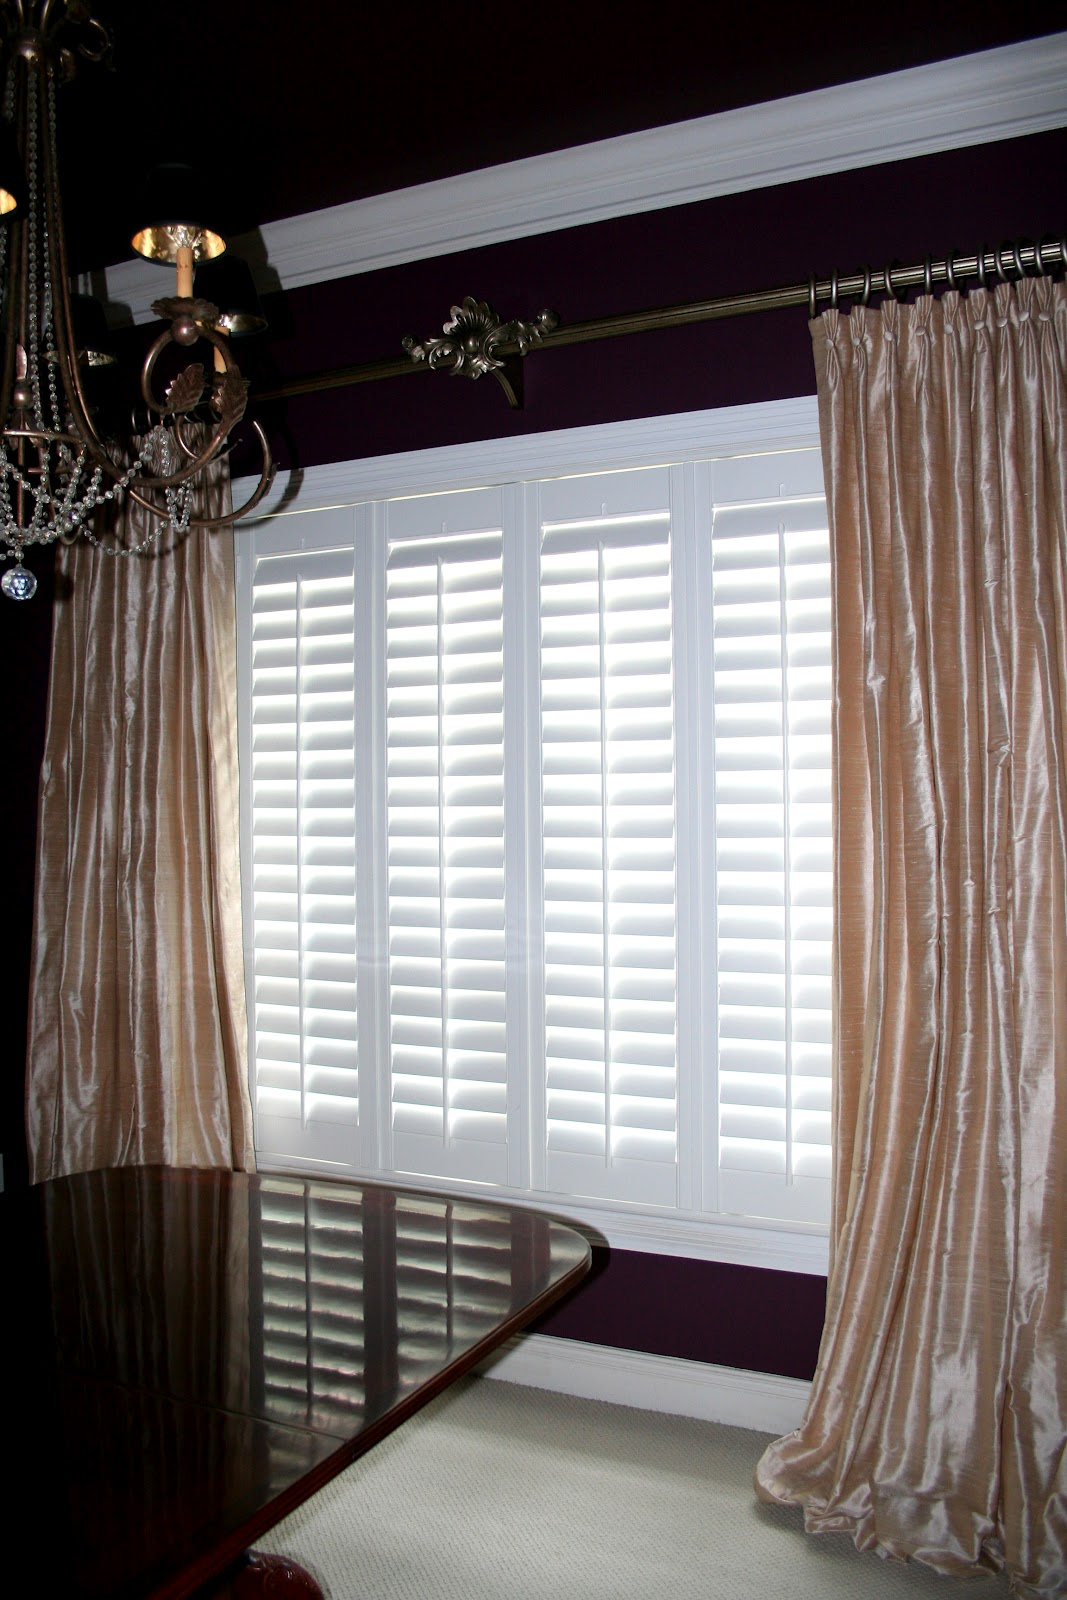 Elegant Hardware and Luxurious Window Treatments